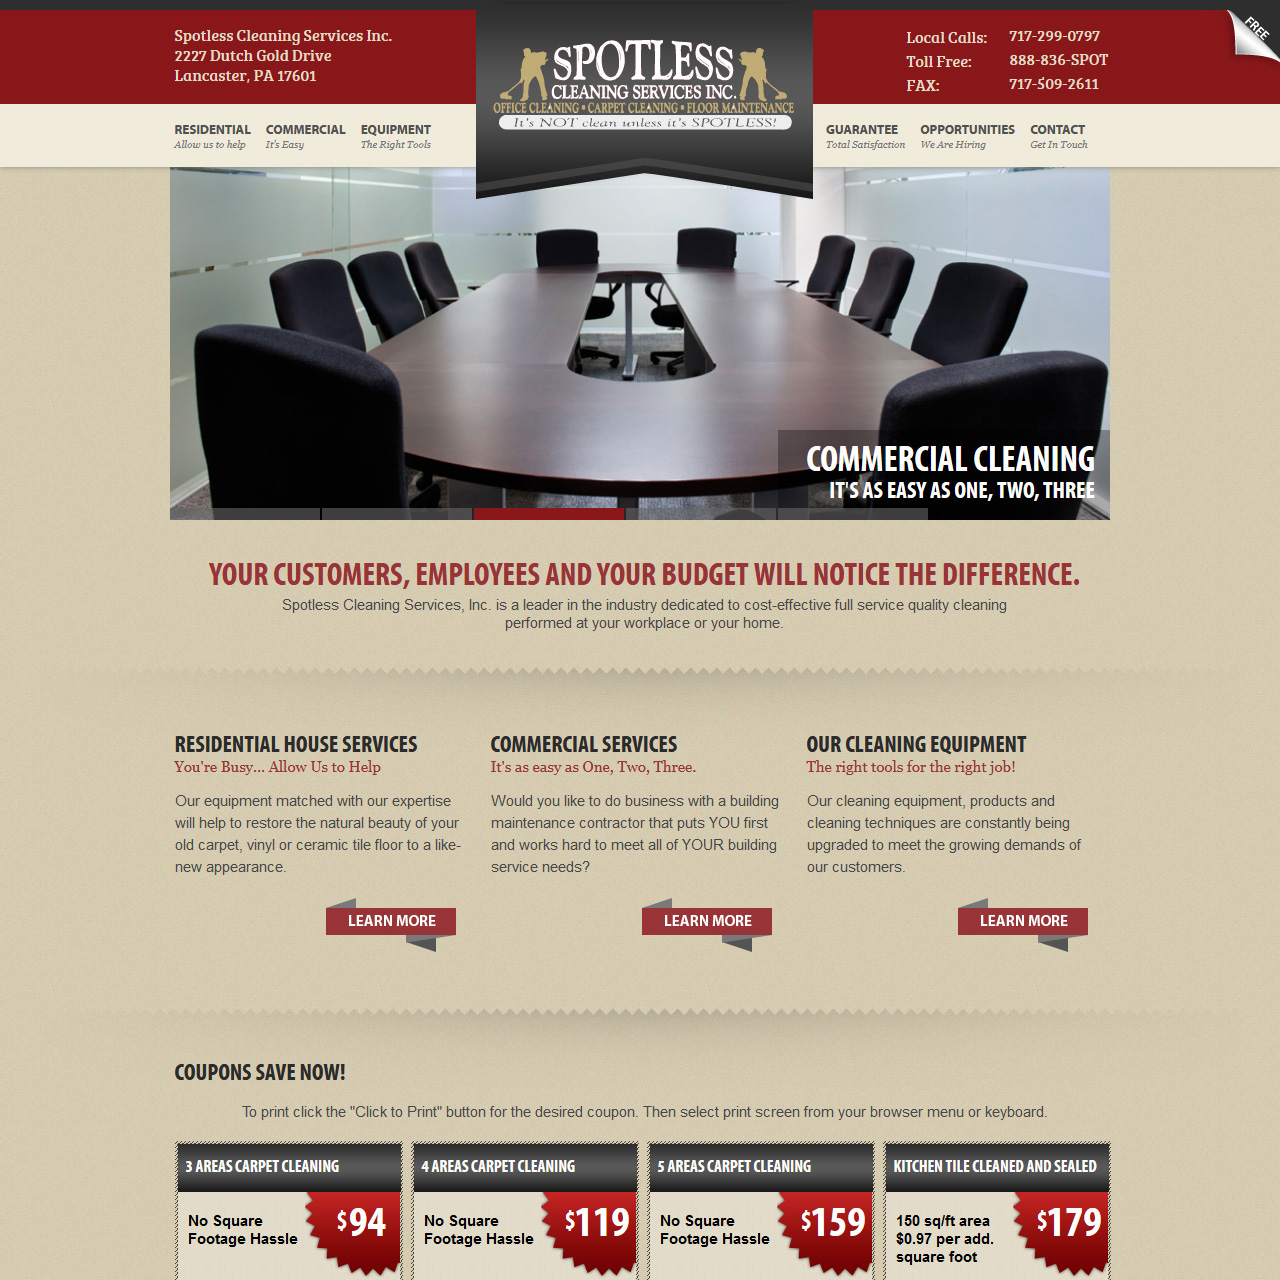 Spotless Cleaning Services Inc. - Cleaning service website design